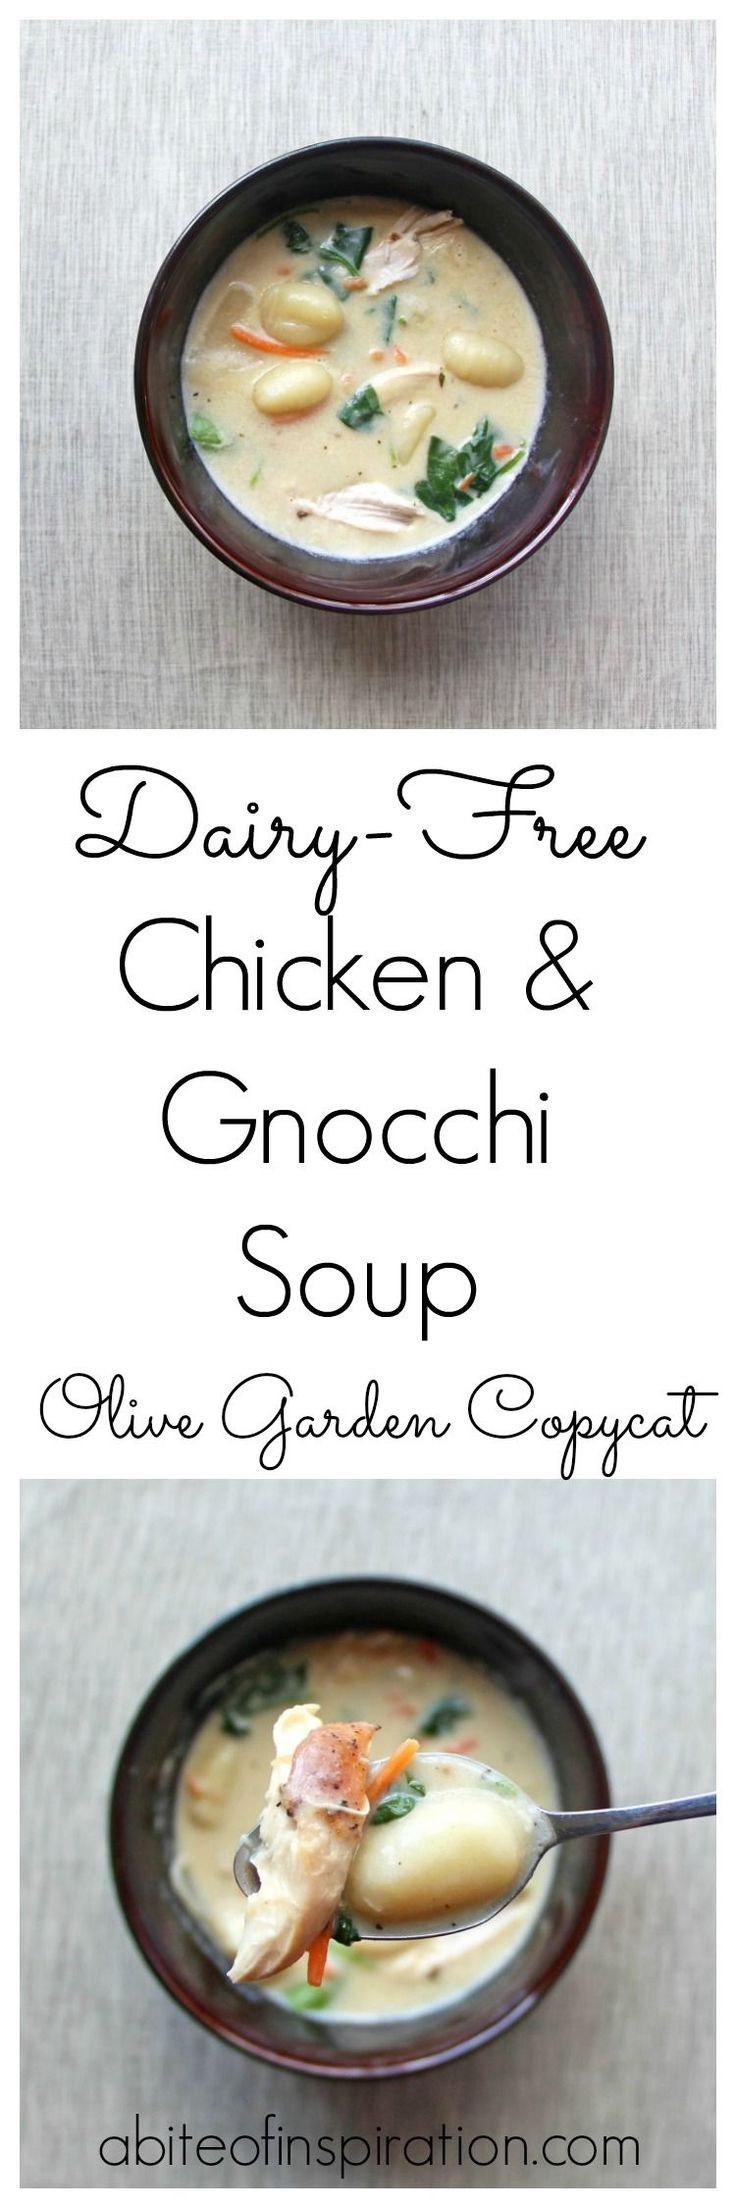 A lighter and healthier dairy-free version of your favorite Olive Garden soup! Creamy and flavorful with pillowy gnocchi, tender chicken, and tasty veggies!